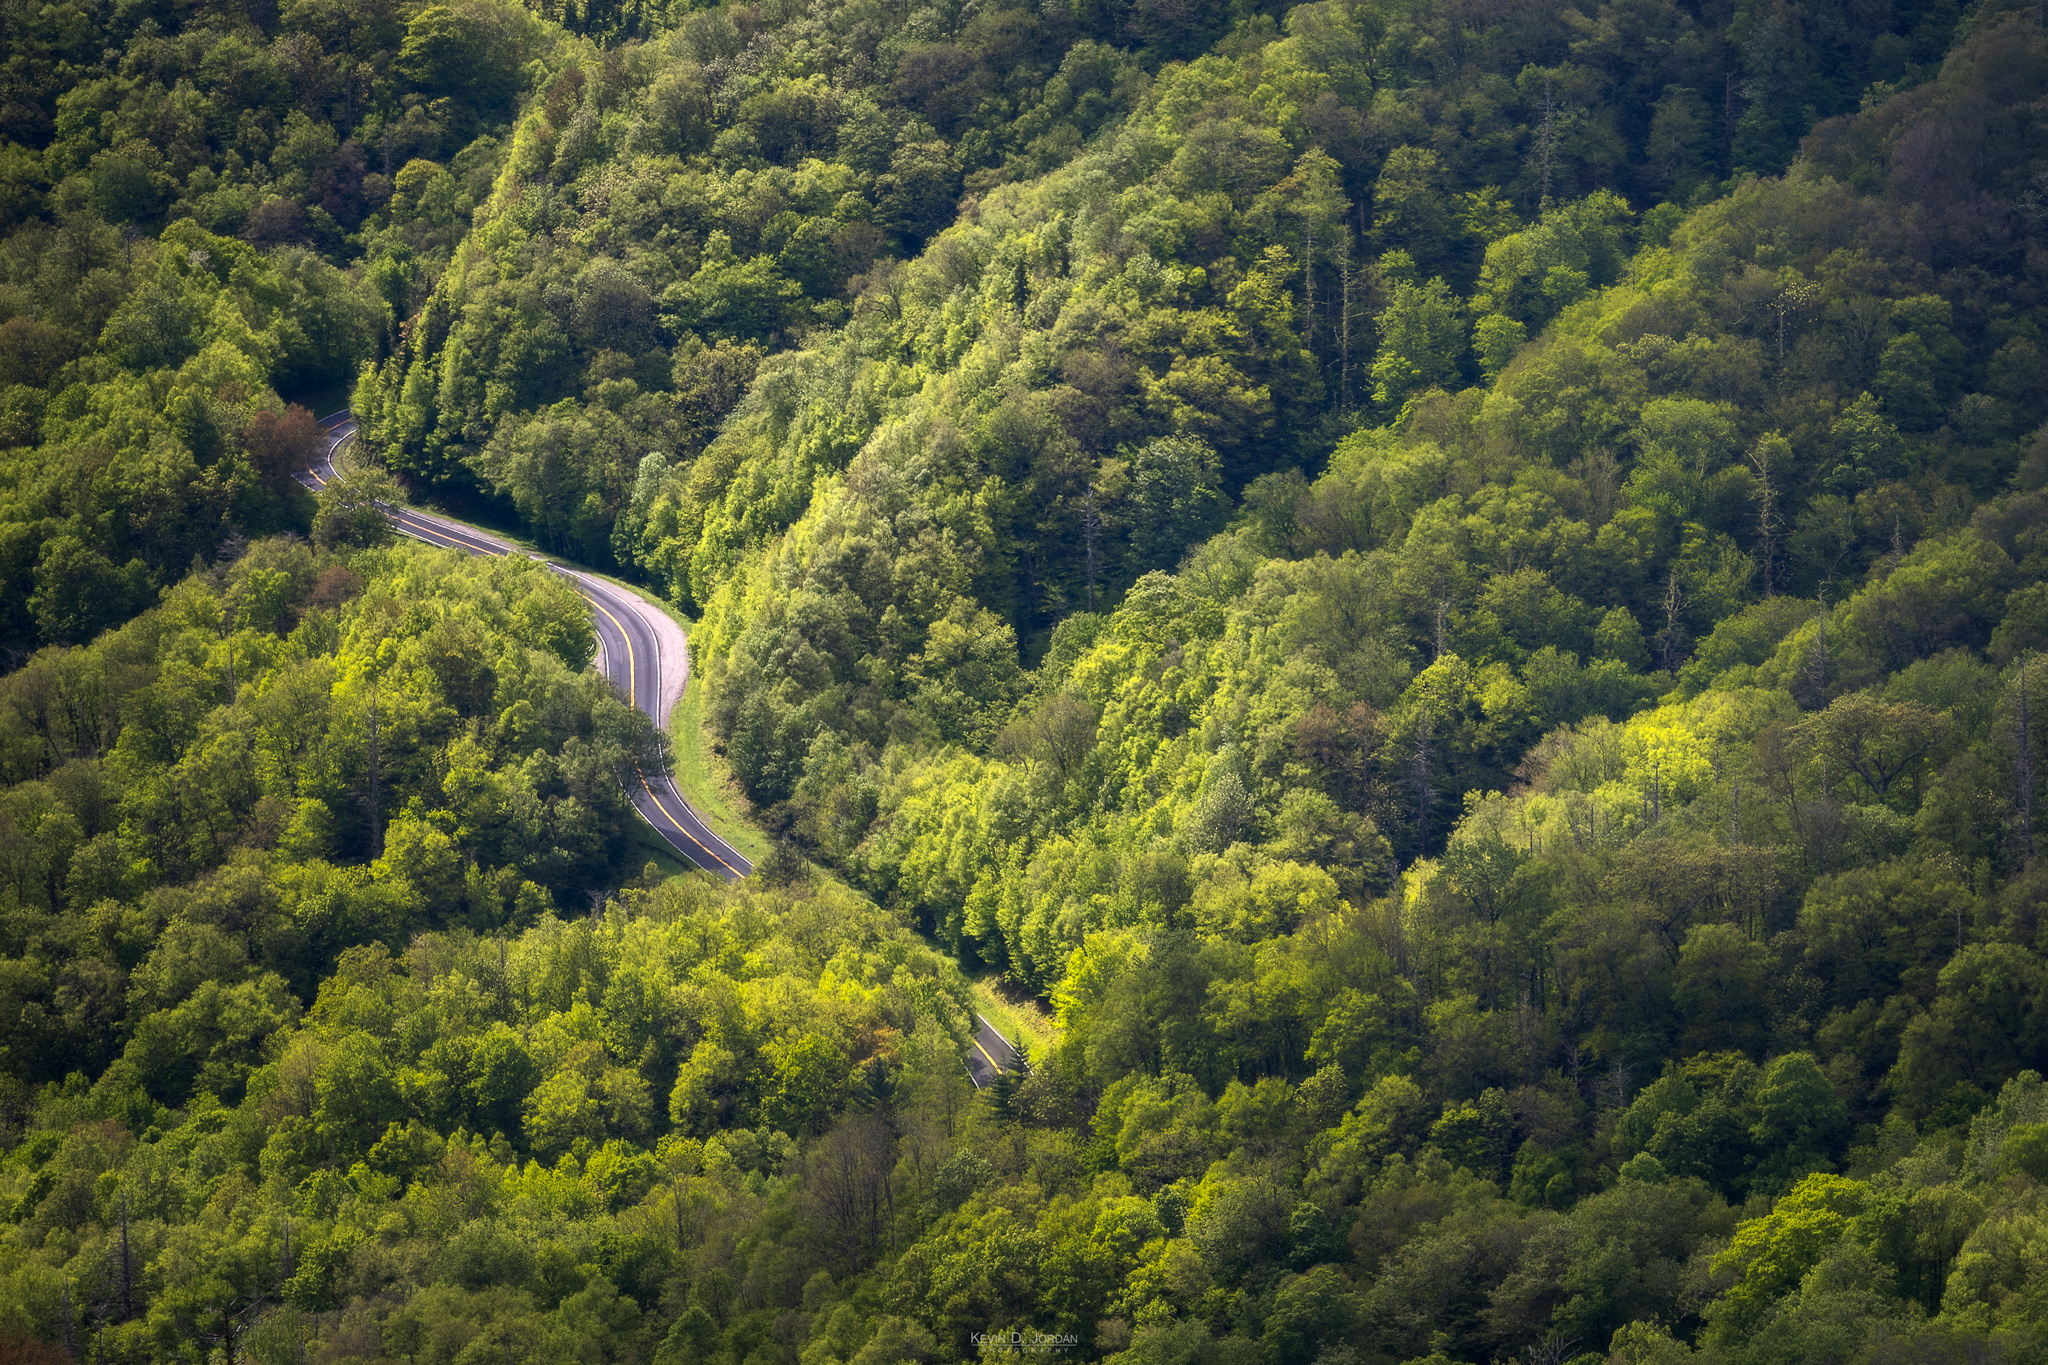 A road winds through the trees in Great Smoky Mountain National Park (© Kevin D. Jordan Photography)